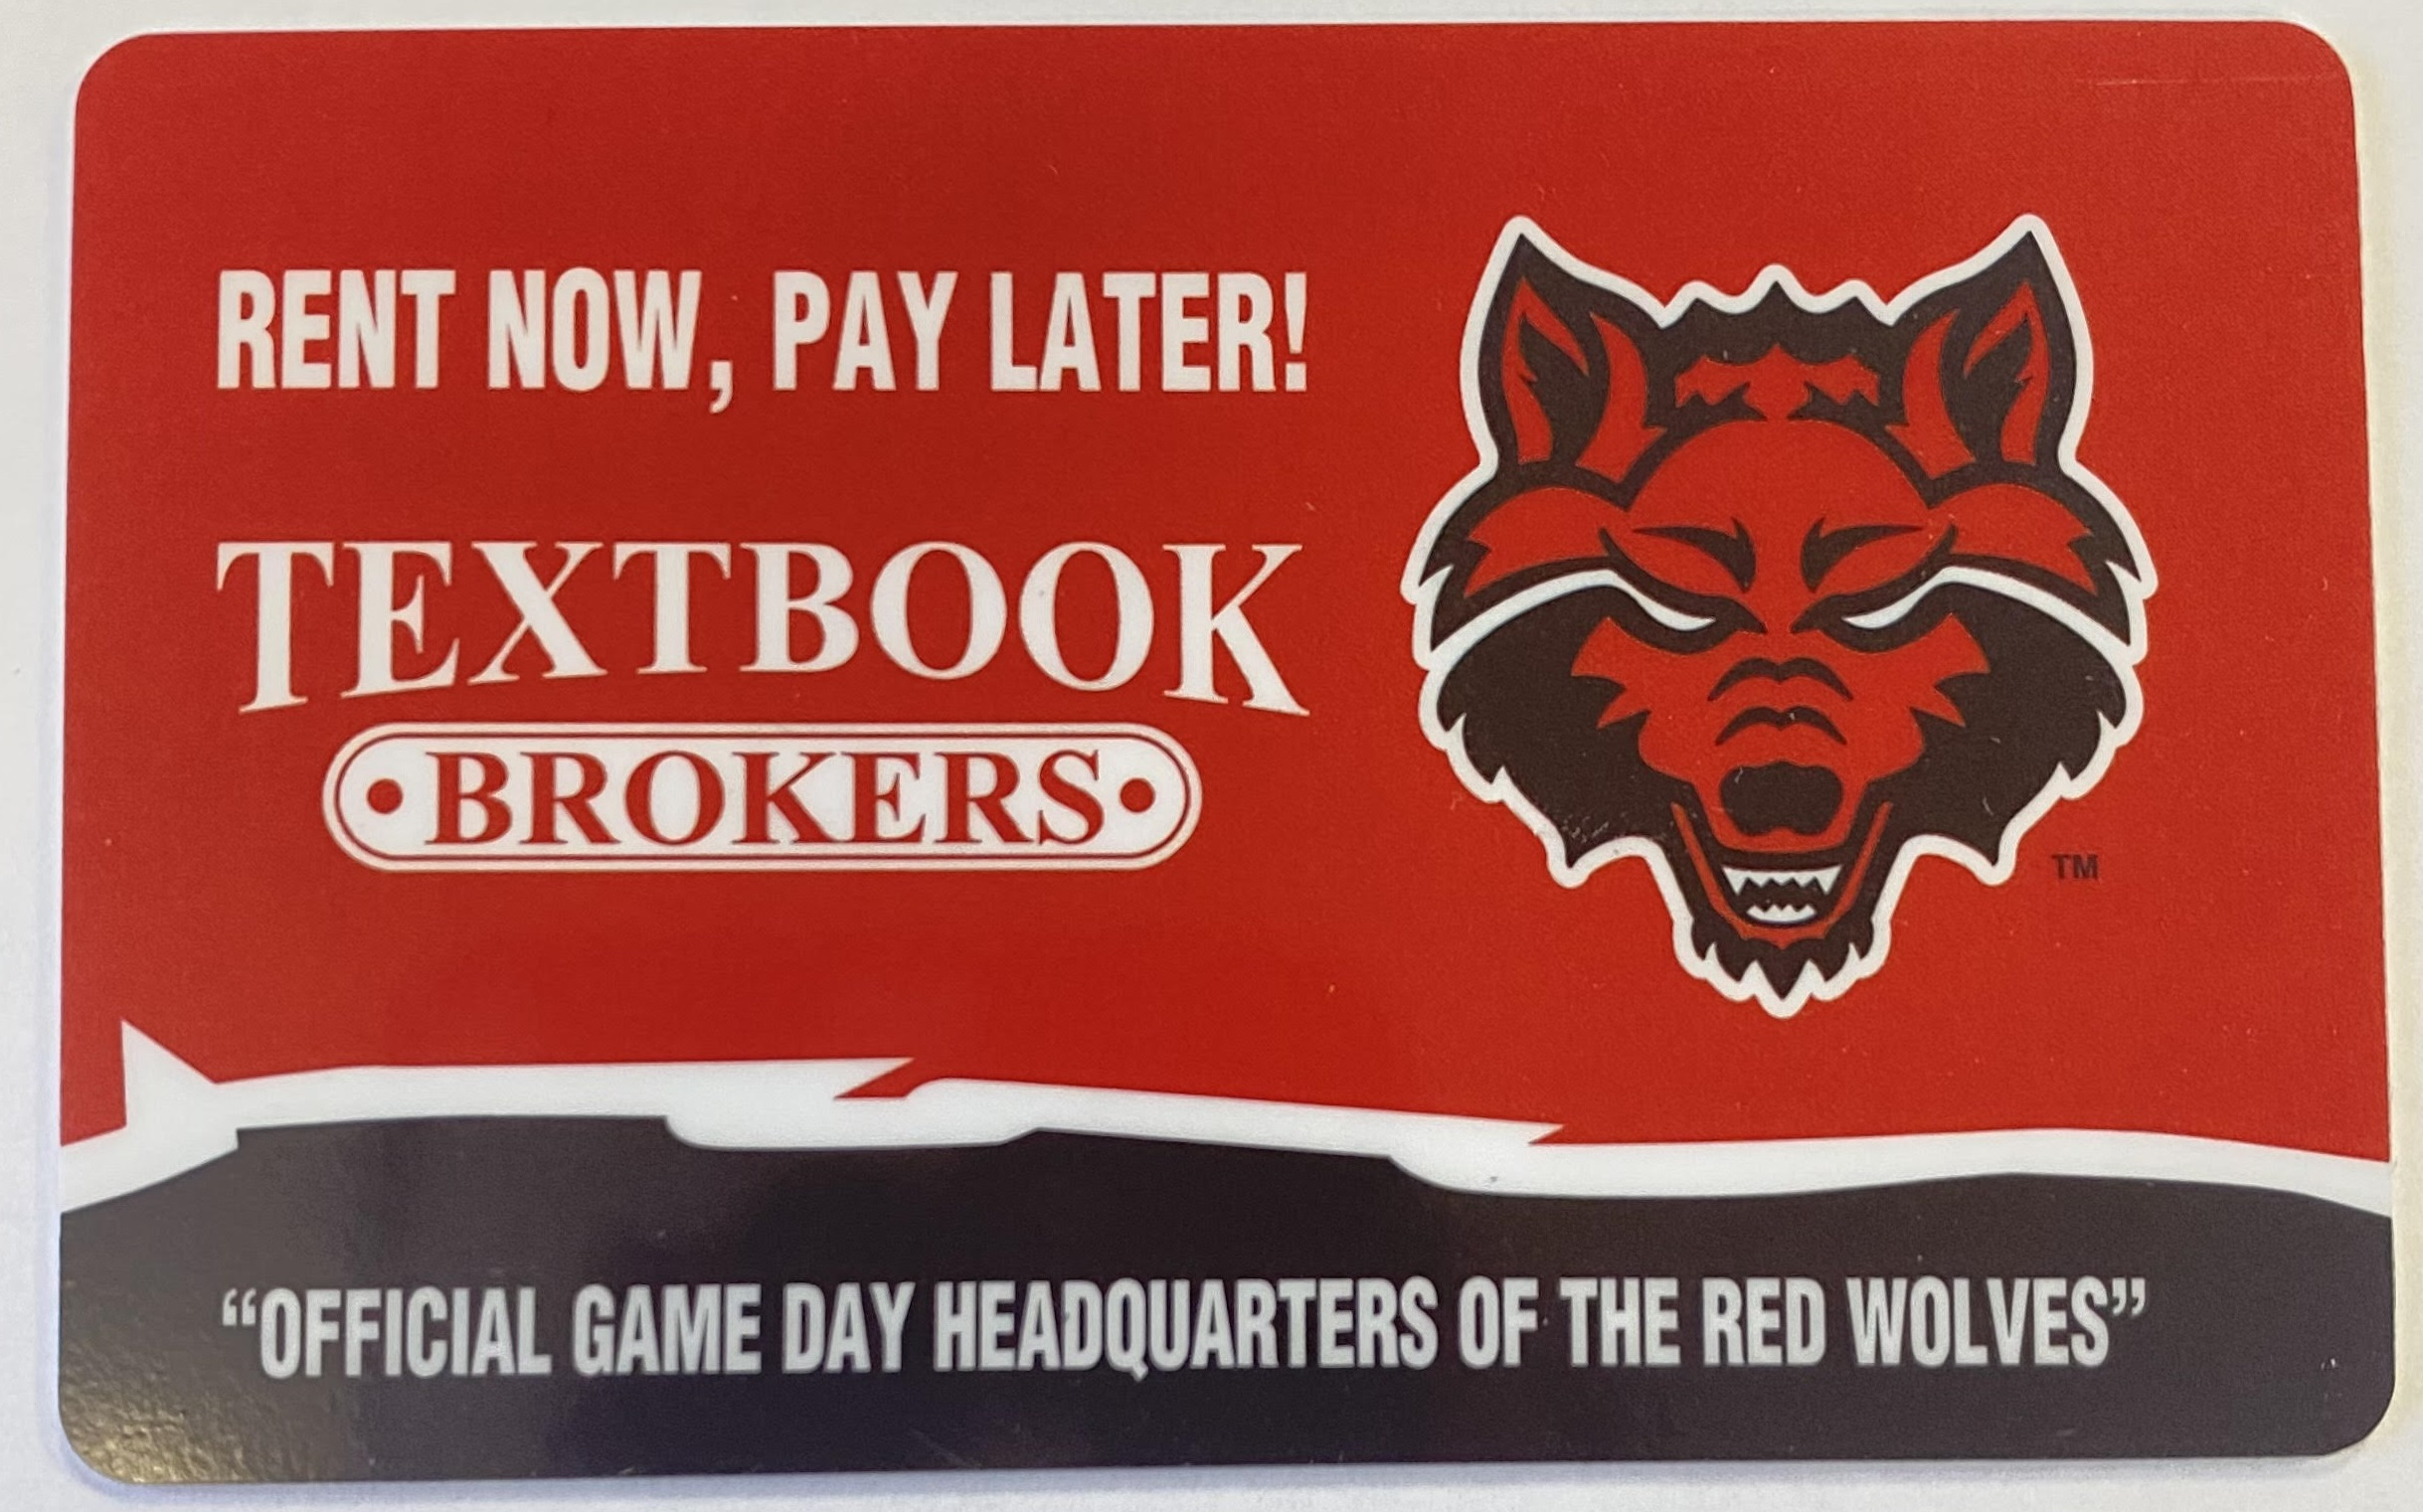 $100 Textbook Brokers Gift Card